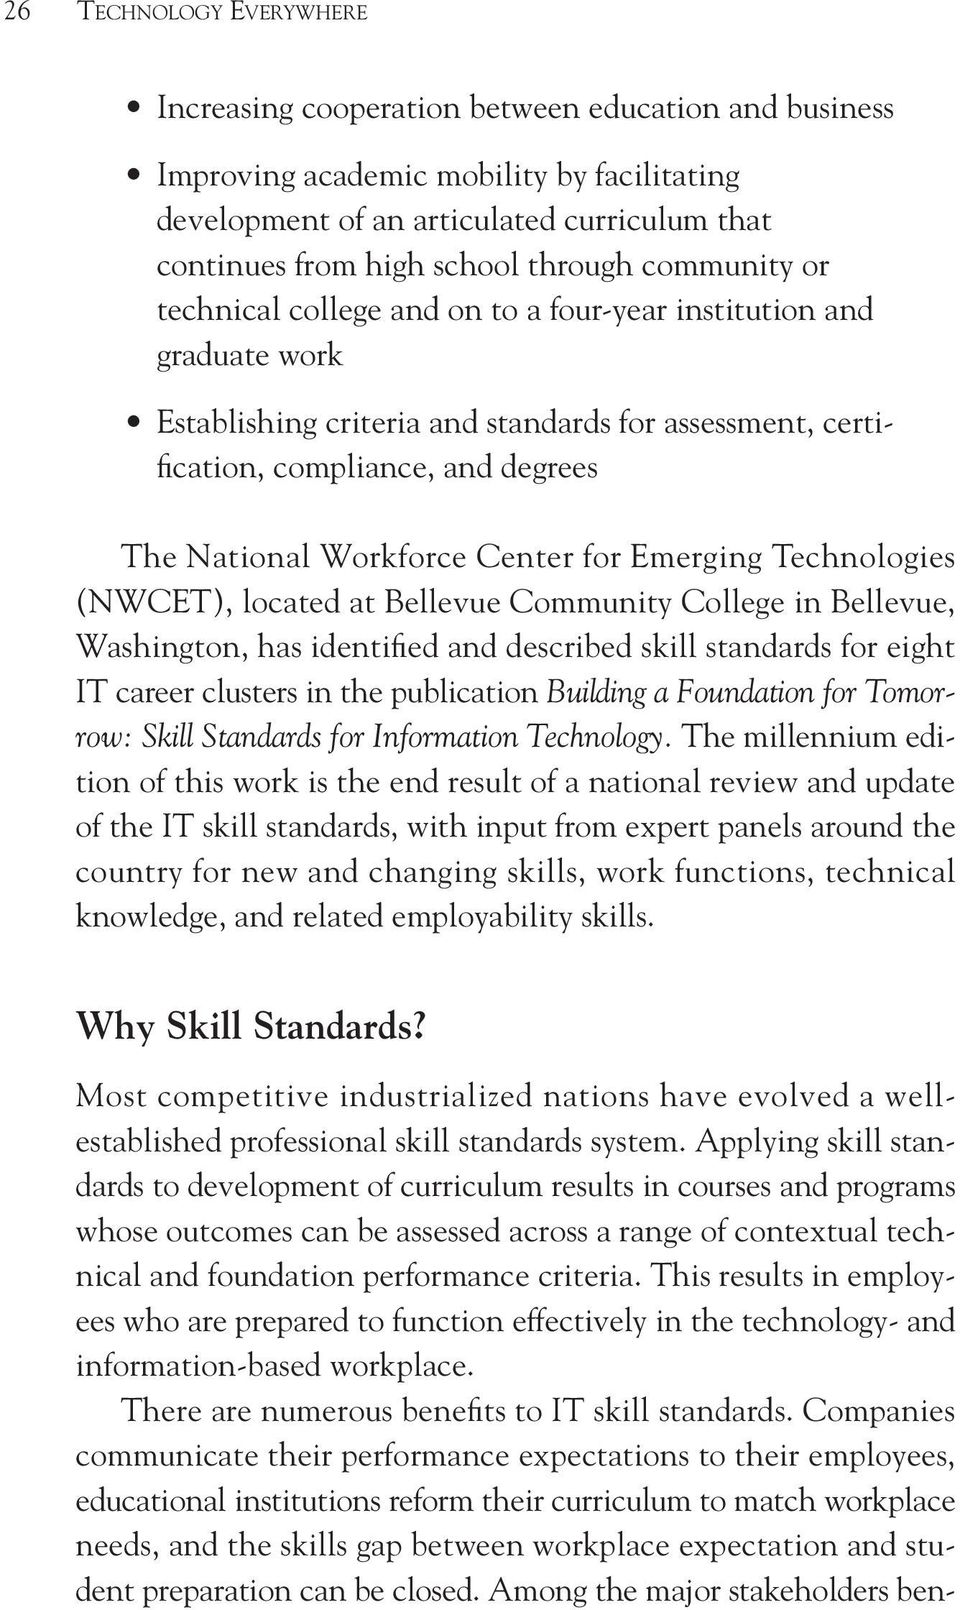 Workforce Center for Emerging Technologies (NWCET), located at Bellevue Community College in Bellevue, Washington, has identified and described skill standards for eight IT career clusters in the